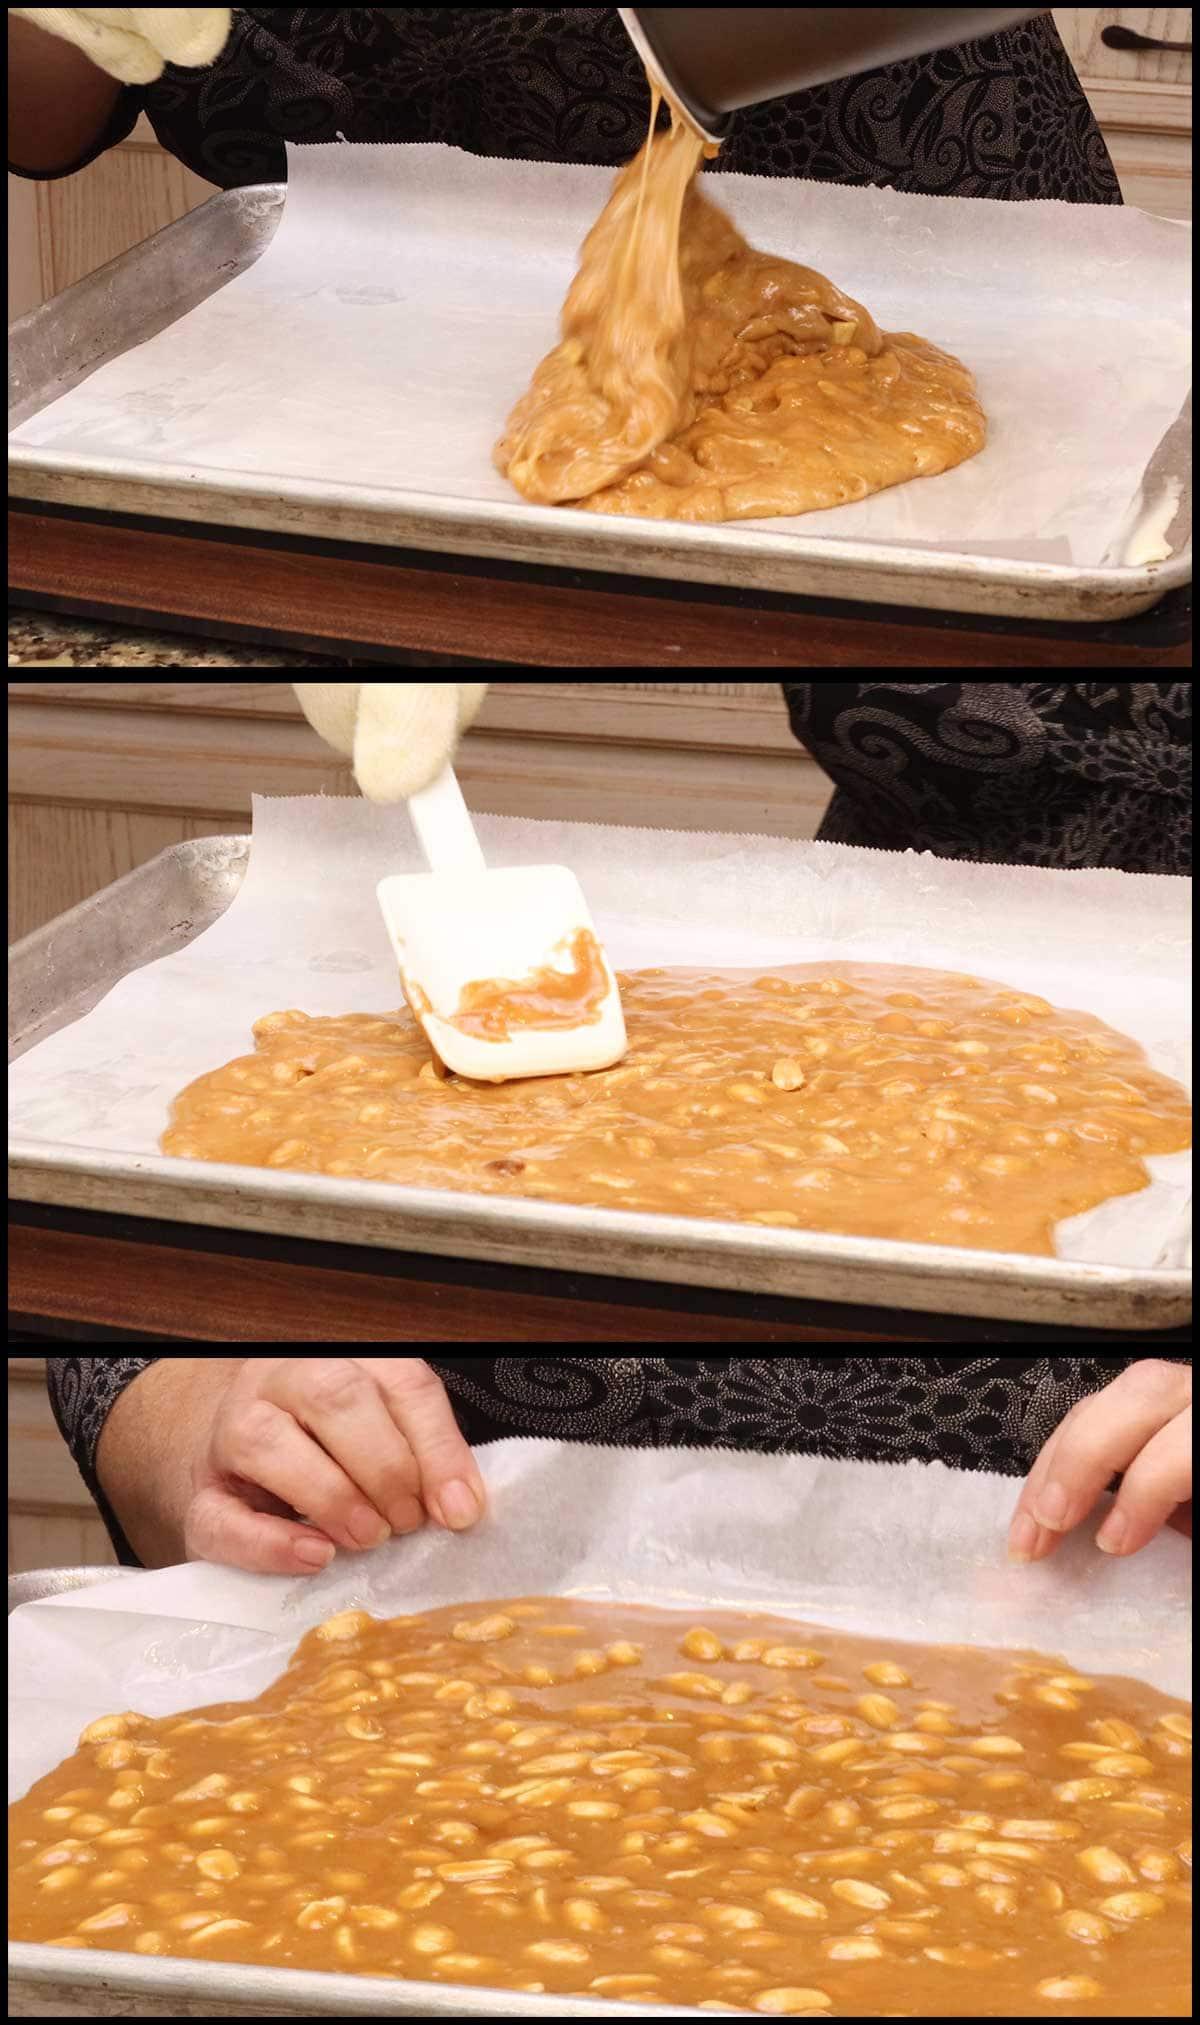 pouring the peanut brittle out onto the parchment